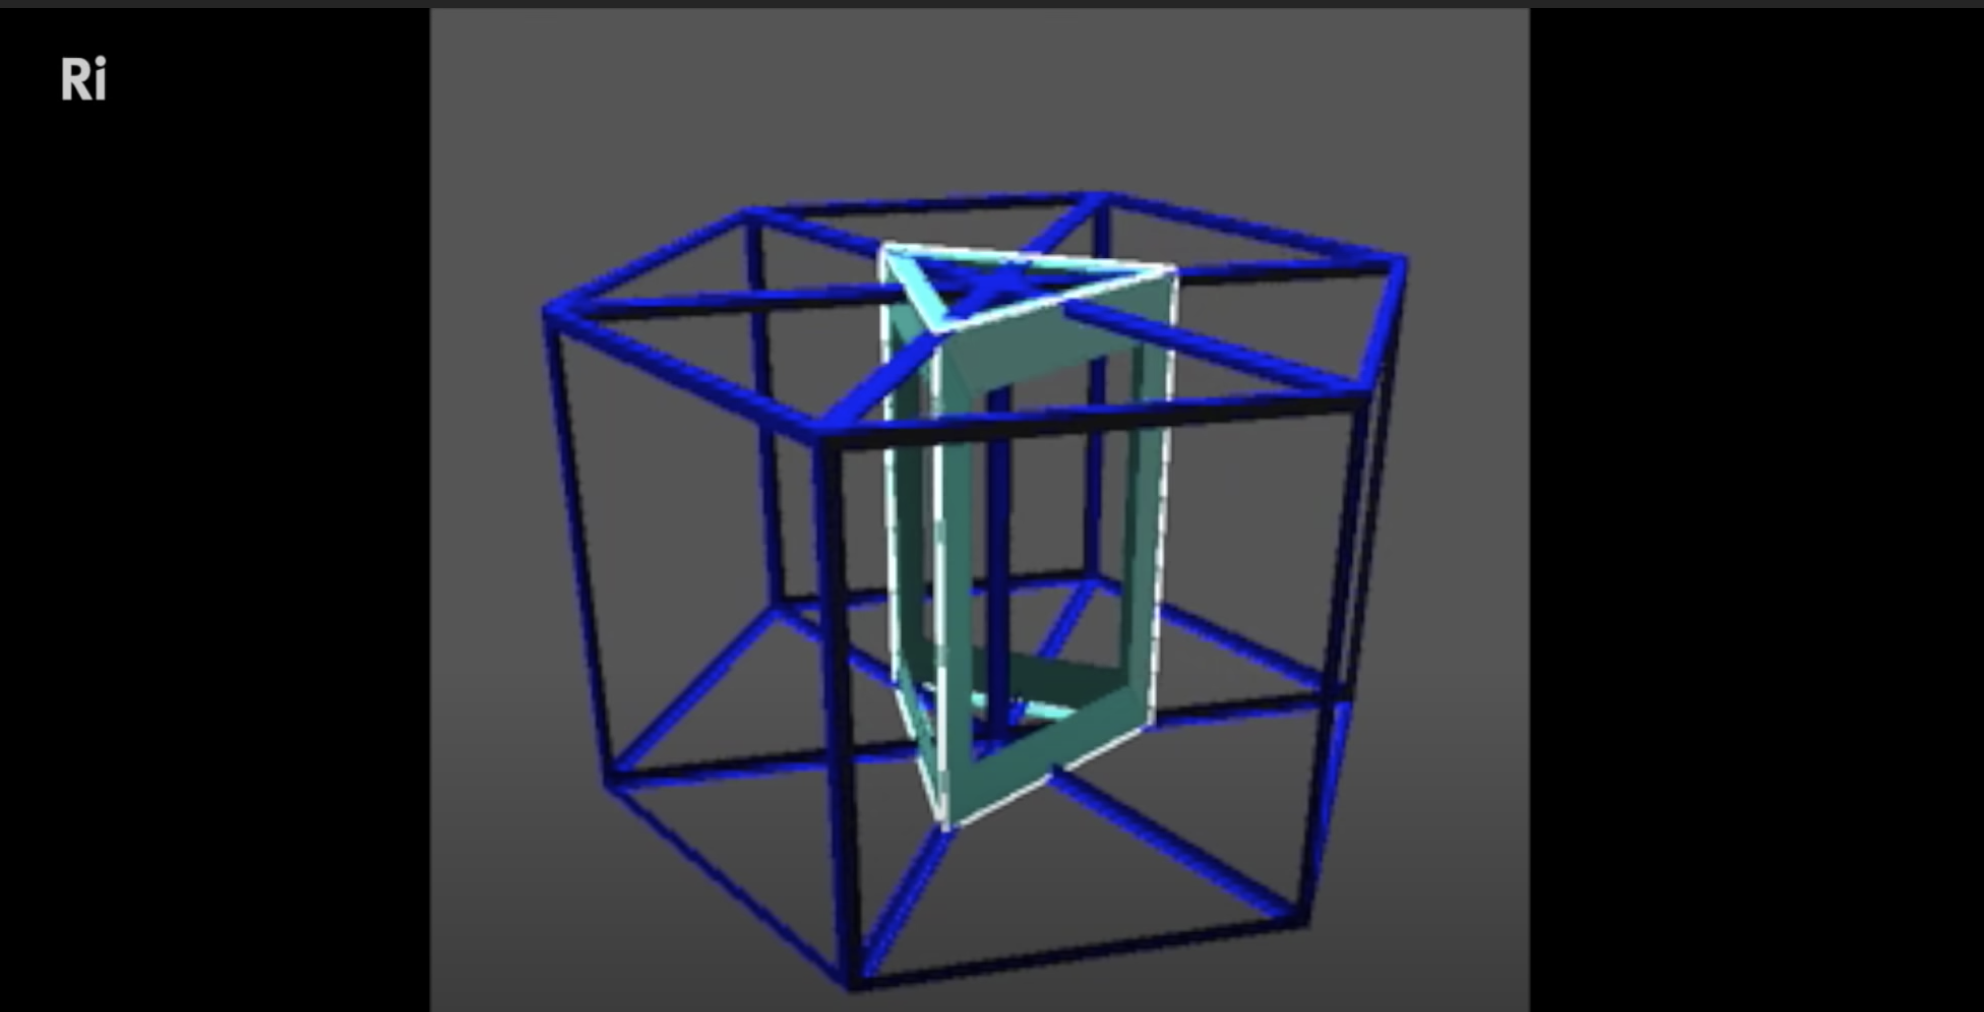 A computer rendering of a 4D object passing through 3D world.